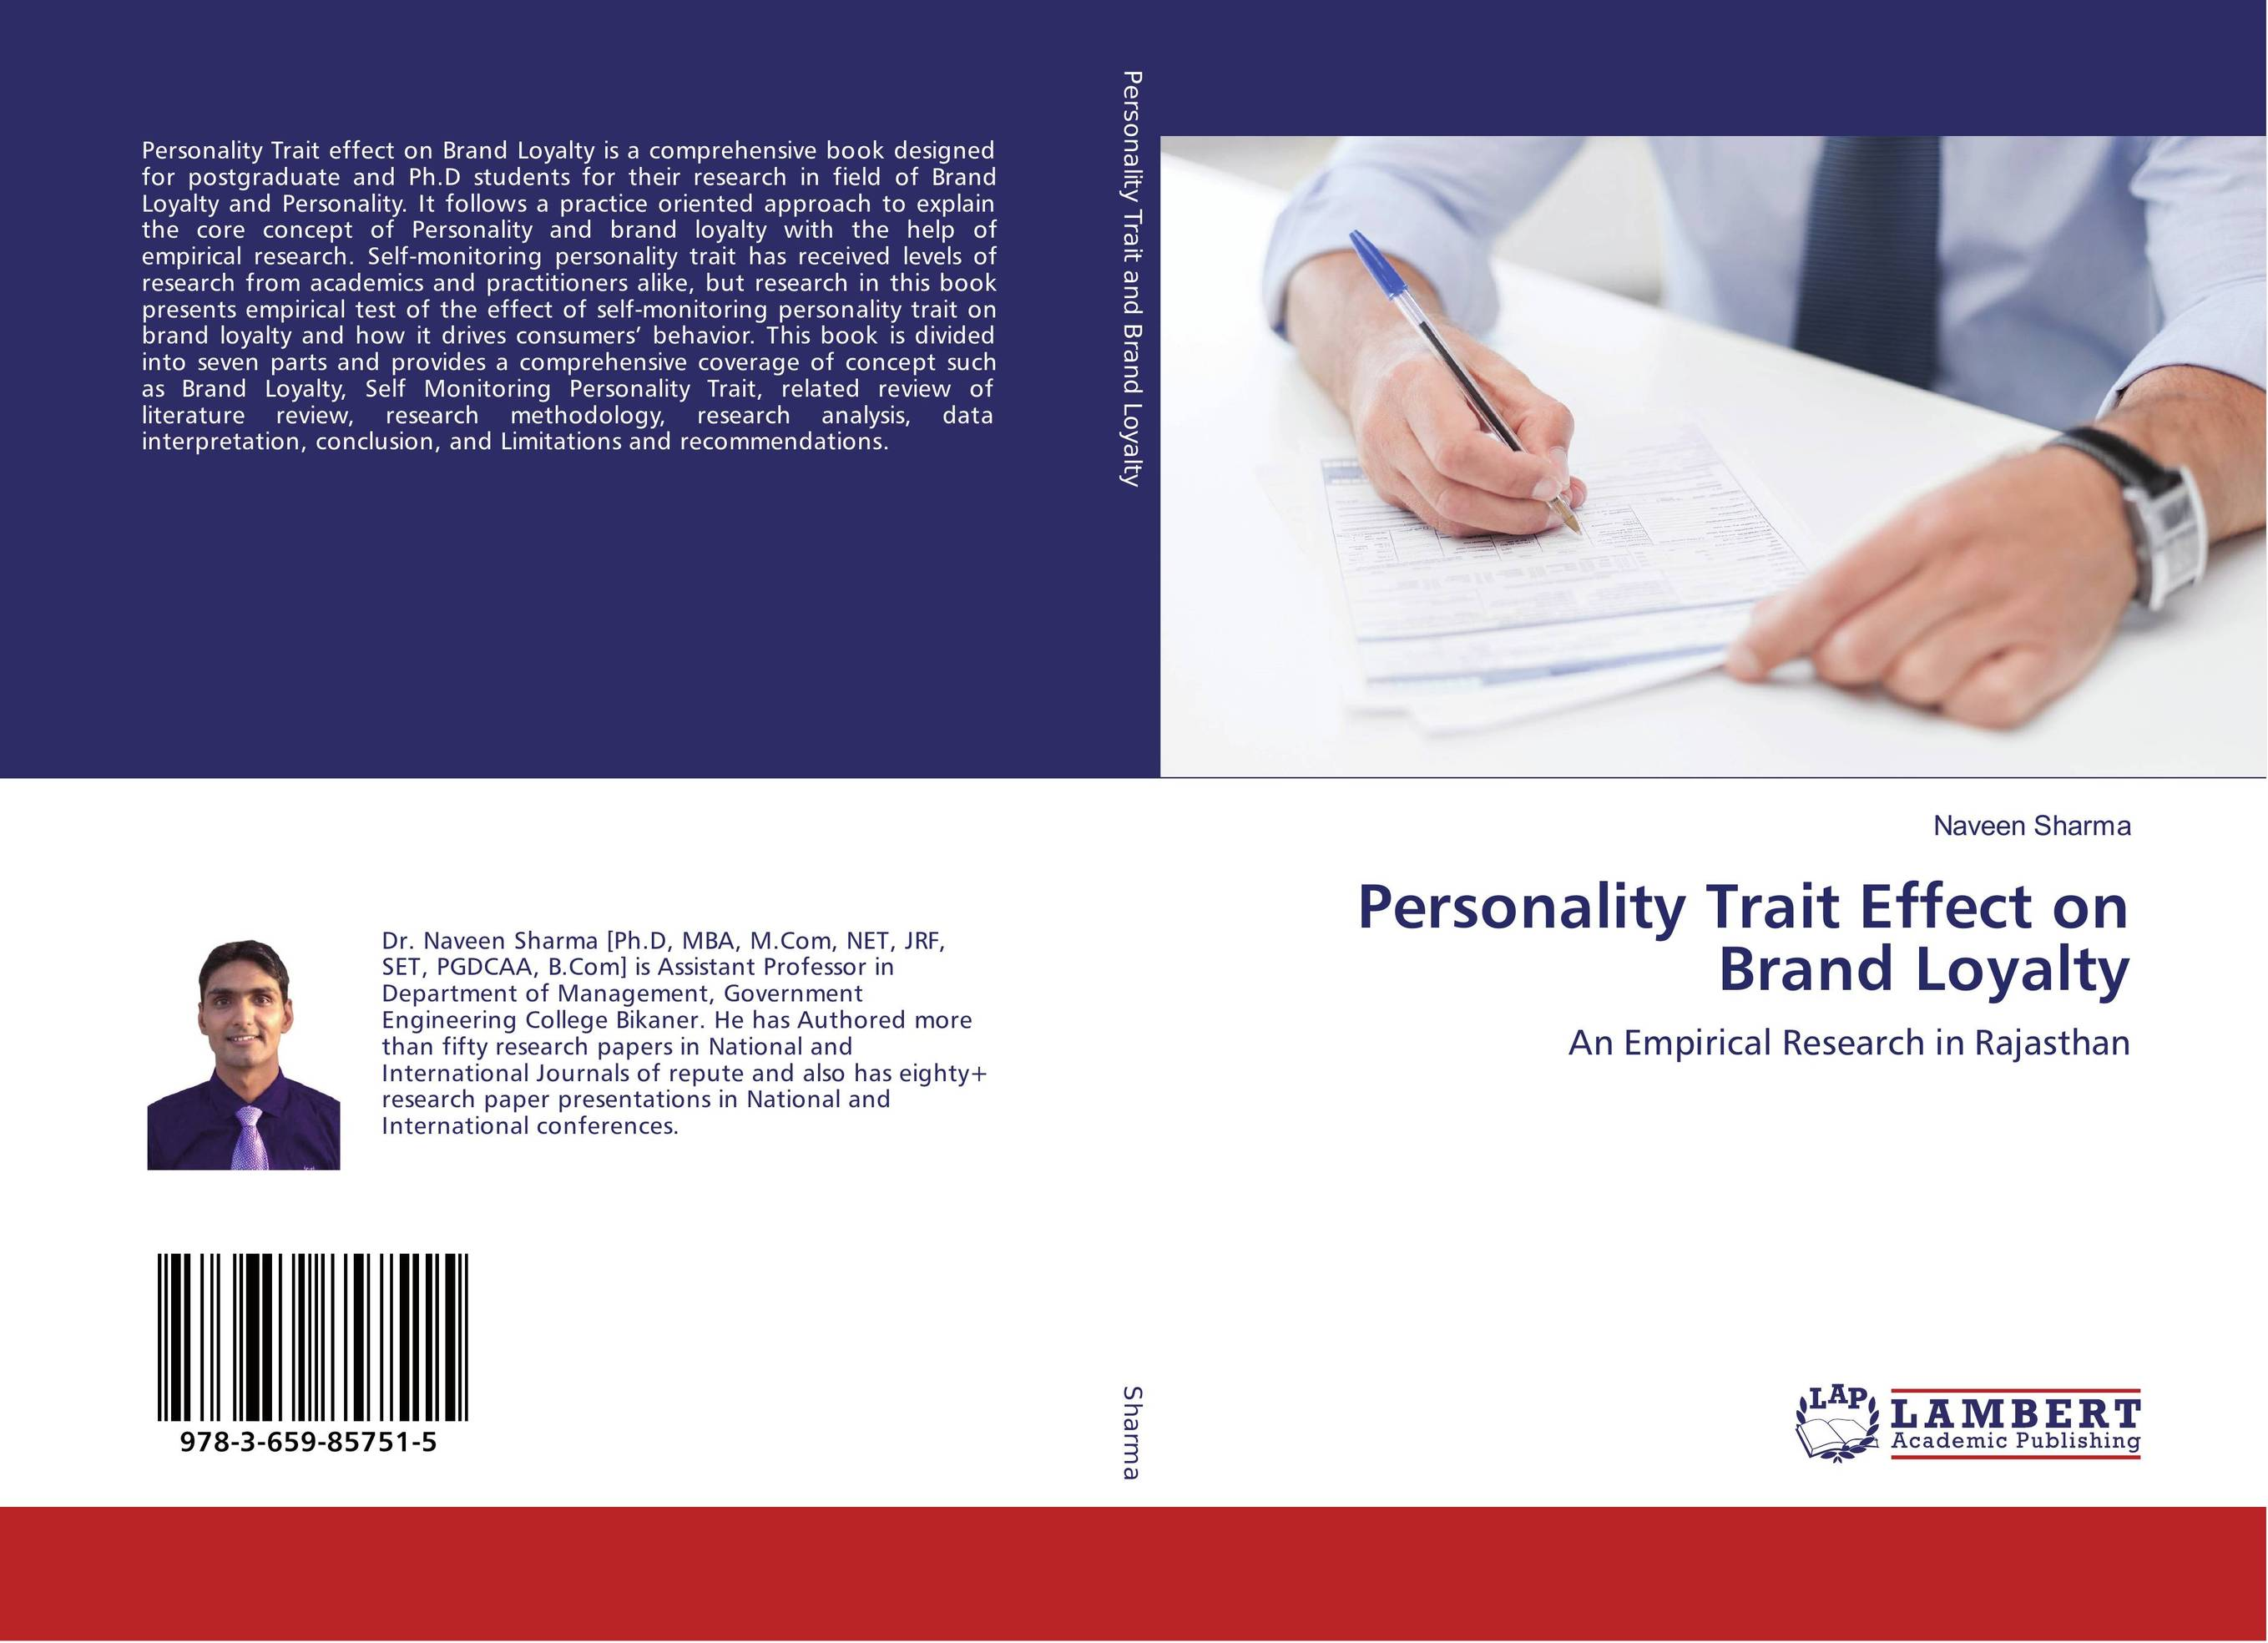 brand loyalty research His research interests include brand equity and consumer satisfaction in the hospitality industry email  yuksel ekinci is a professor of marketing at the business school in oxford brookes university and a senior research fellow at the university of wollongong, australia.